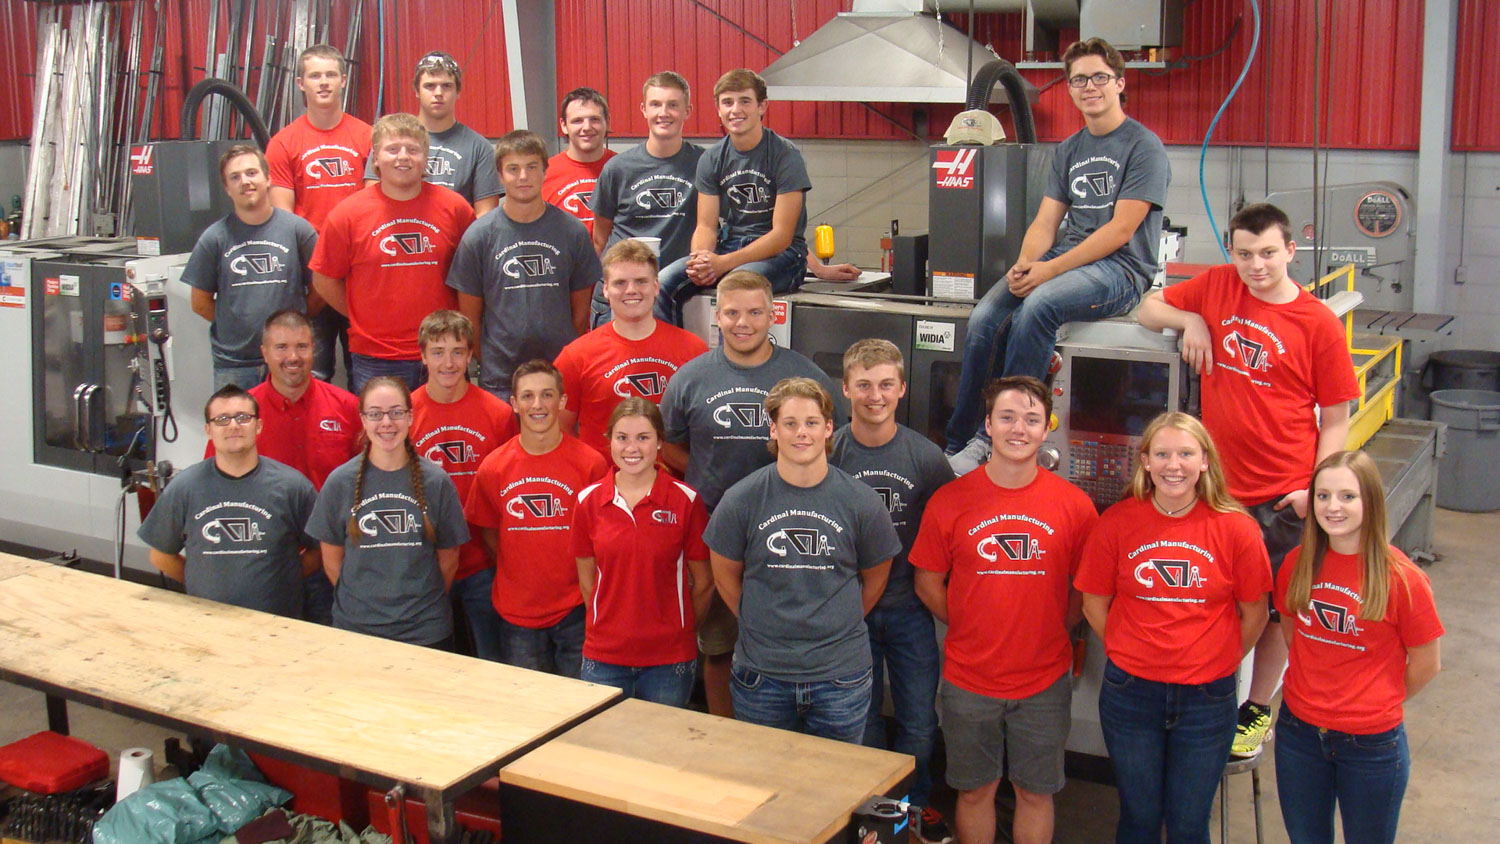 Cardinal Manufacturing Class Picture 2017-18